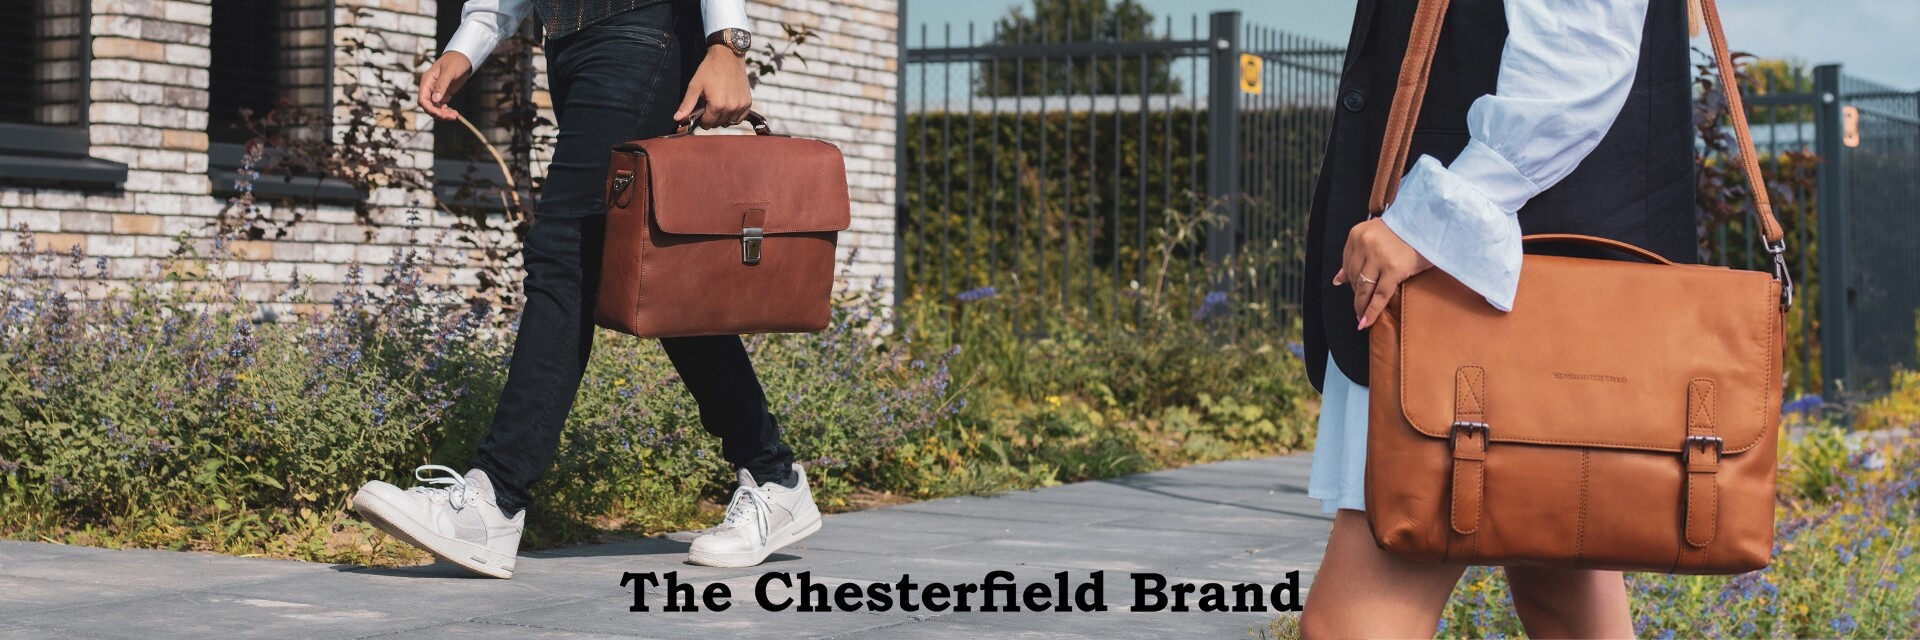 The Chesterfield Brand HW21/22